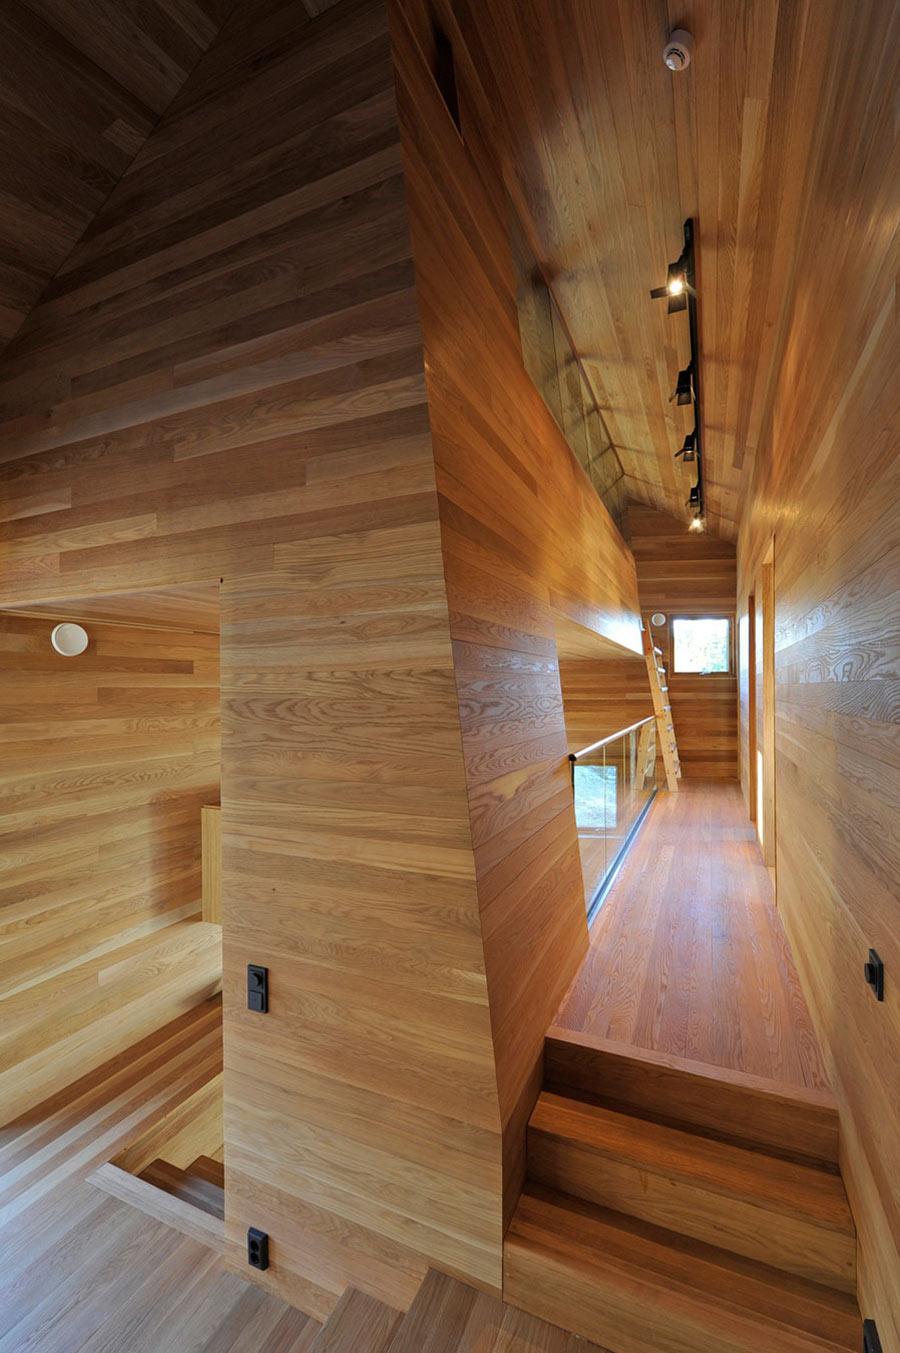 Stairs, Hallway, Ski Home in Kvitfjell, Norway: Twisted Cabin